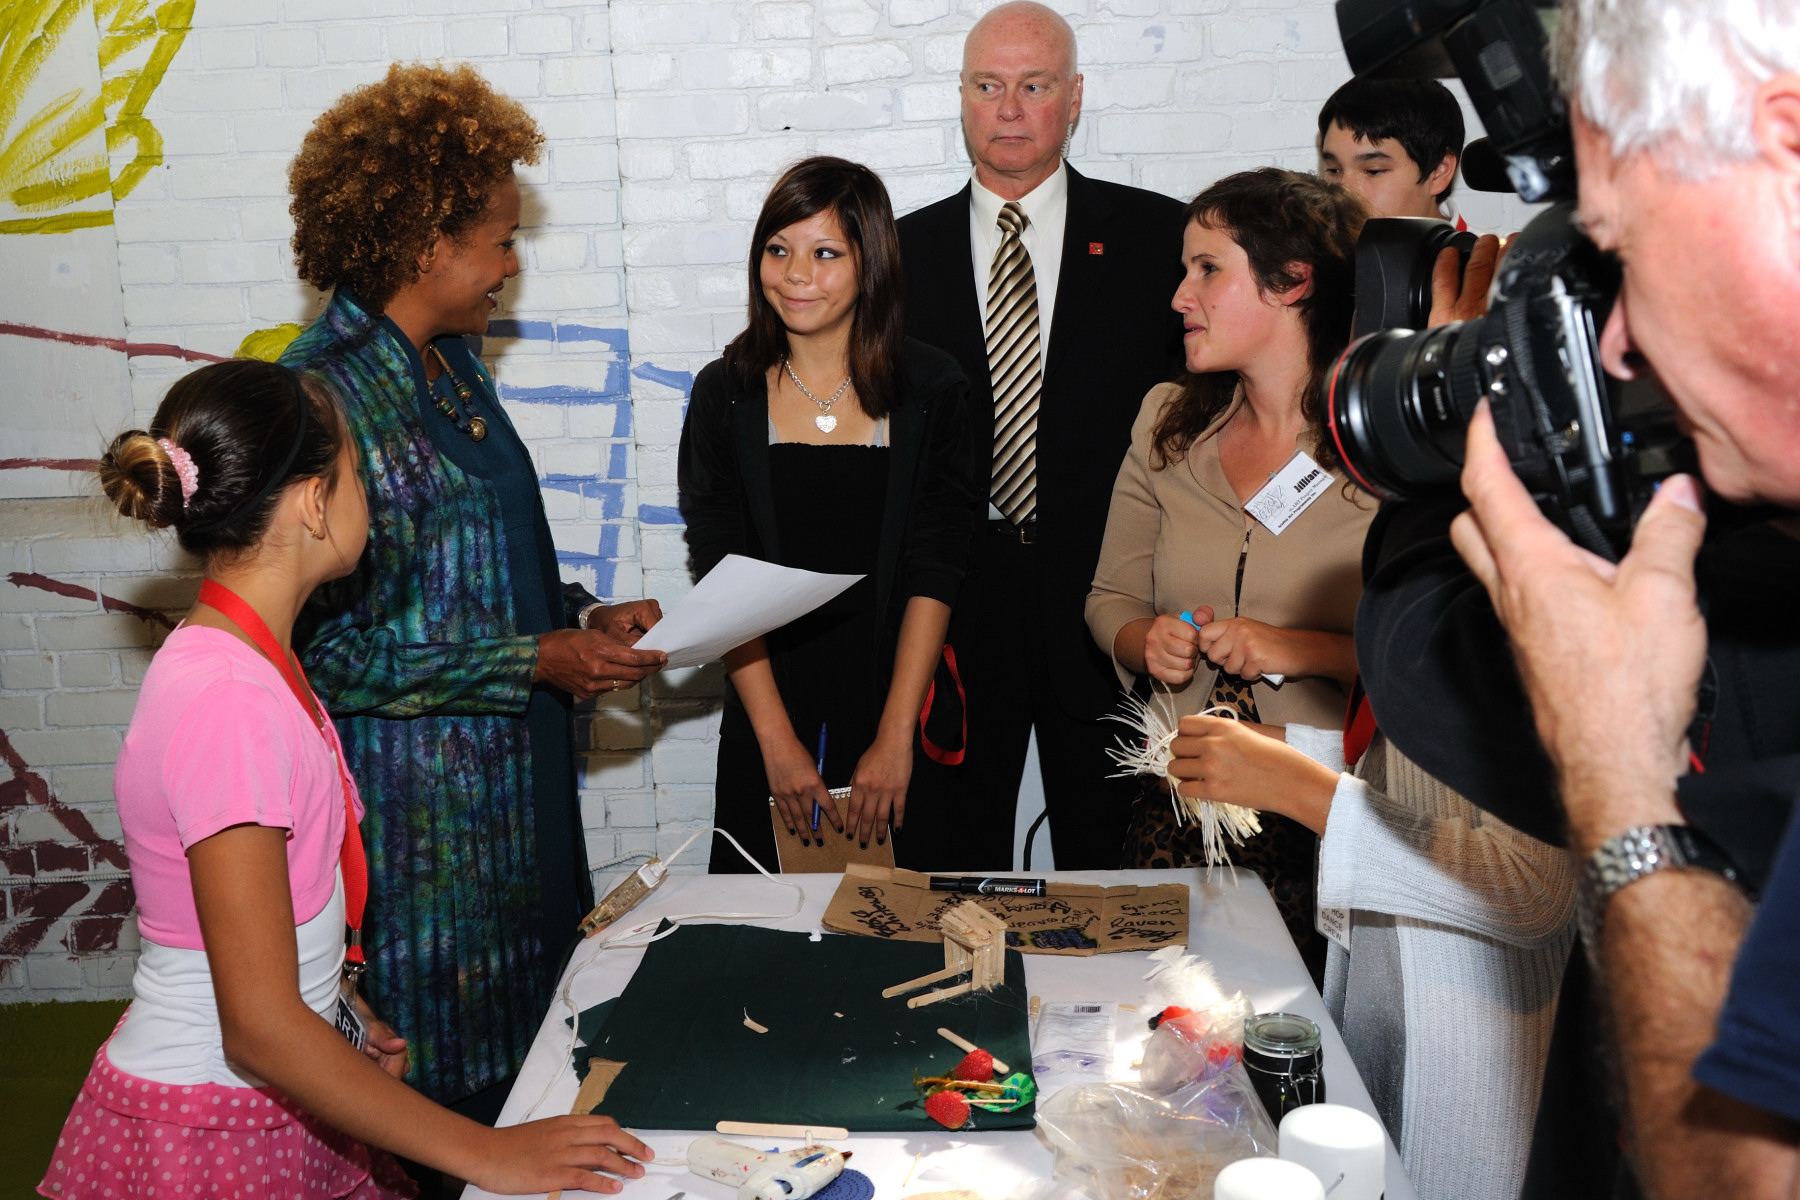 As a follow-up to her Urban Arts Forum at Graffiti Gallery in June 2007, the Governor General saw the new children's art gallery, where she had the opportunity to participate in an art project with children and view youth projects.